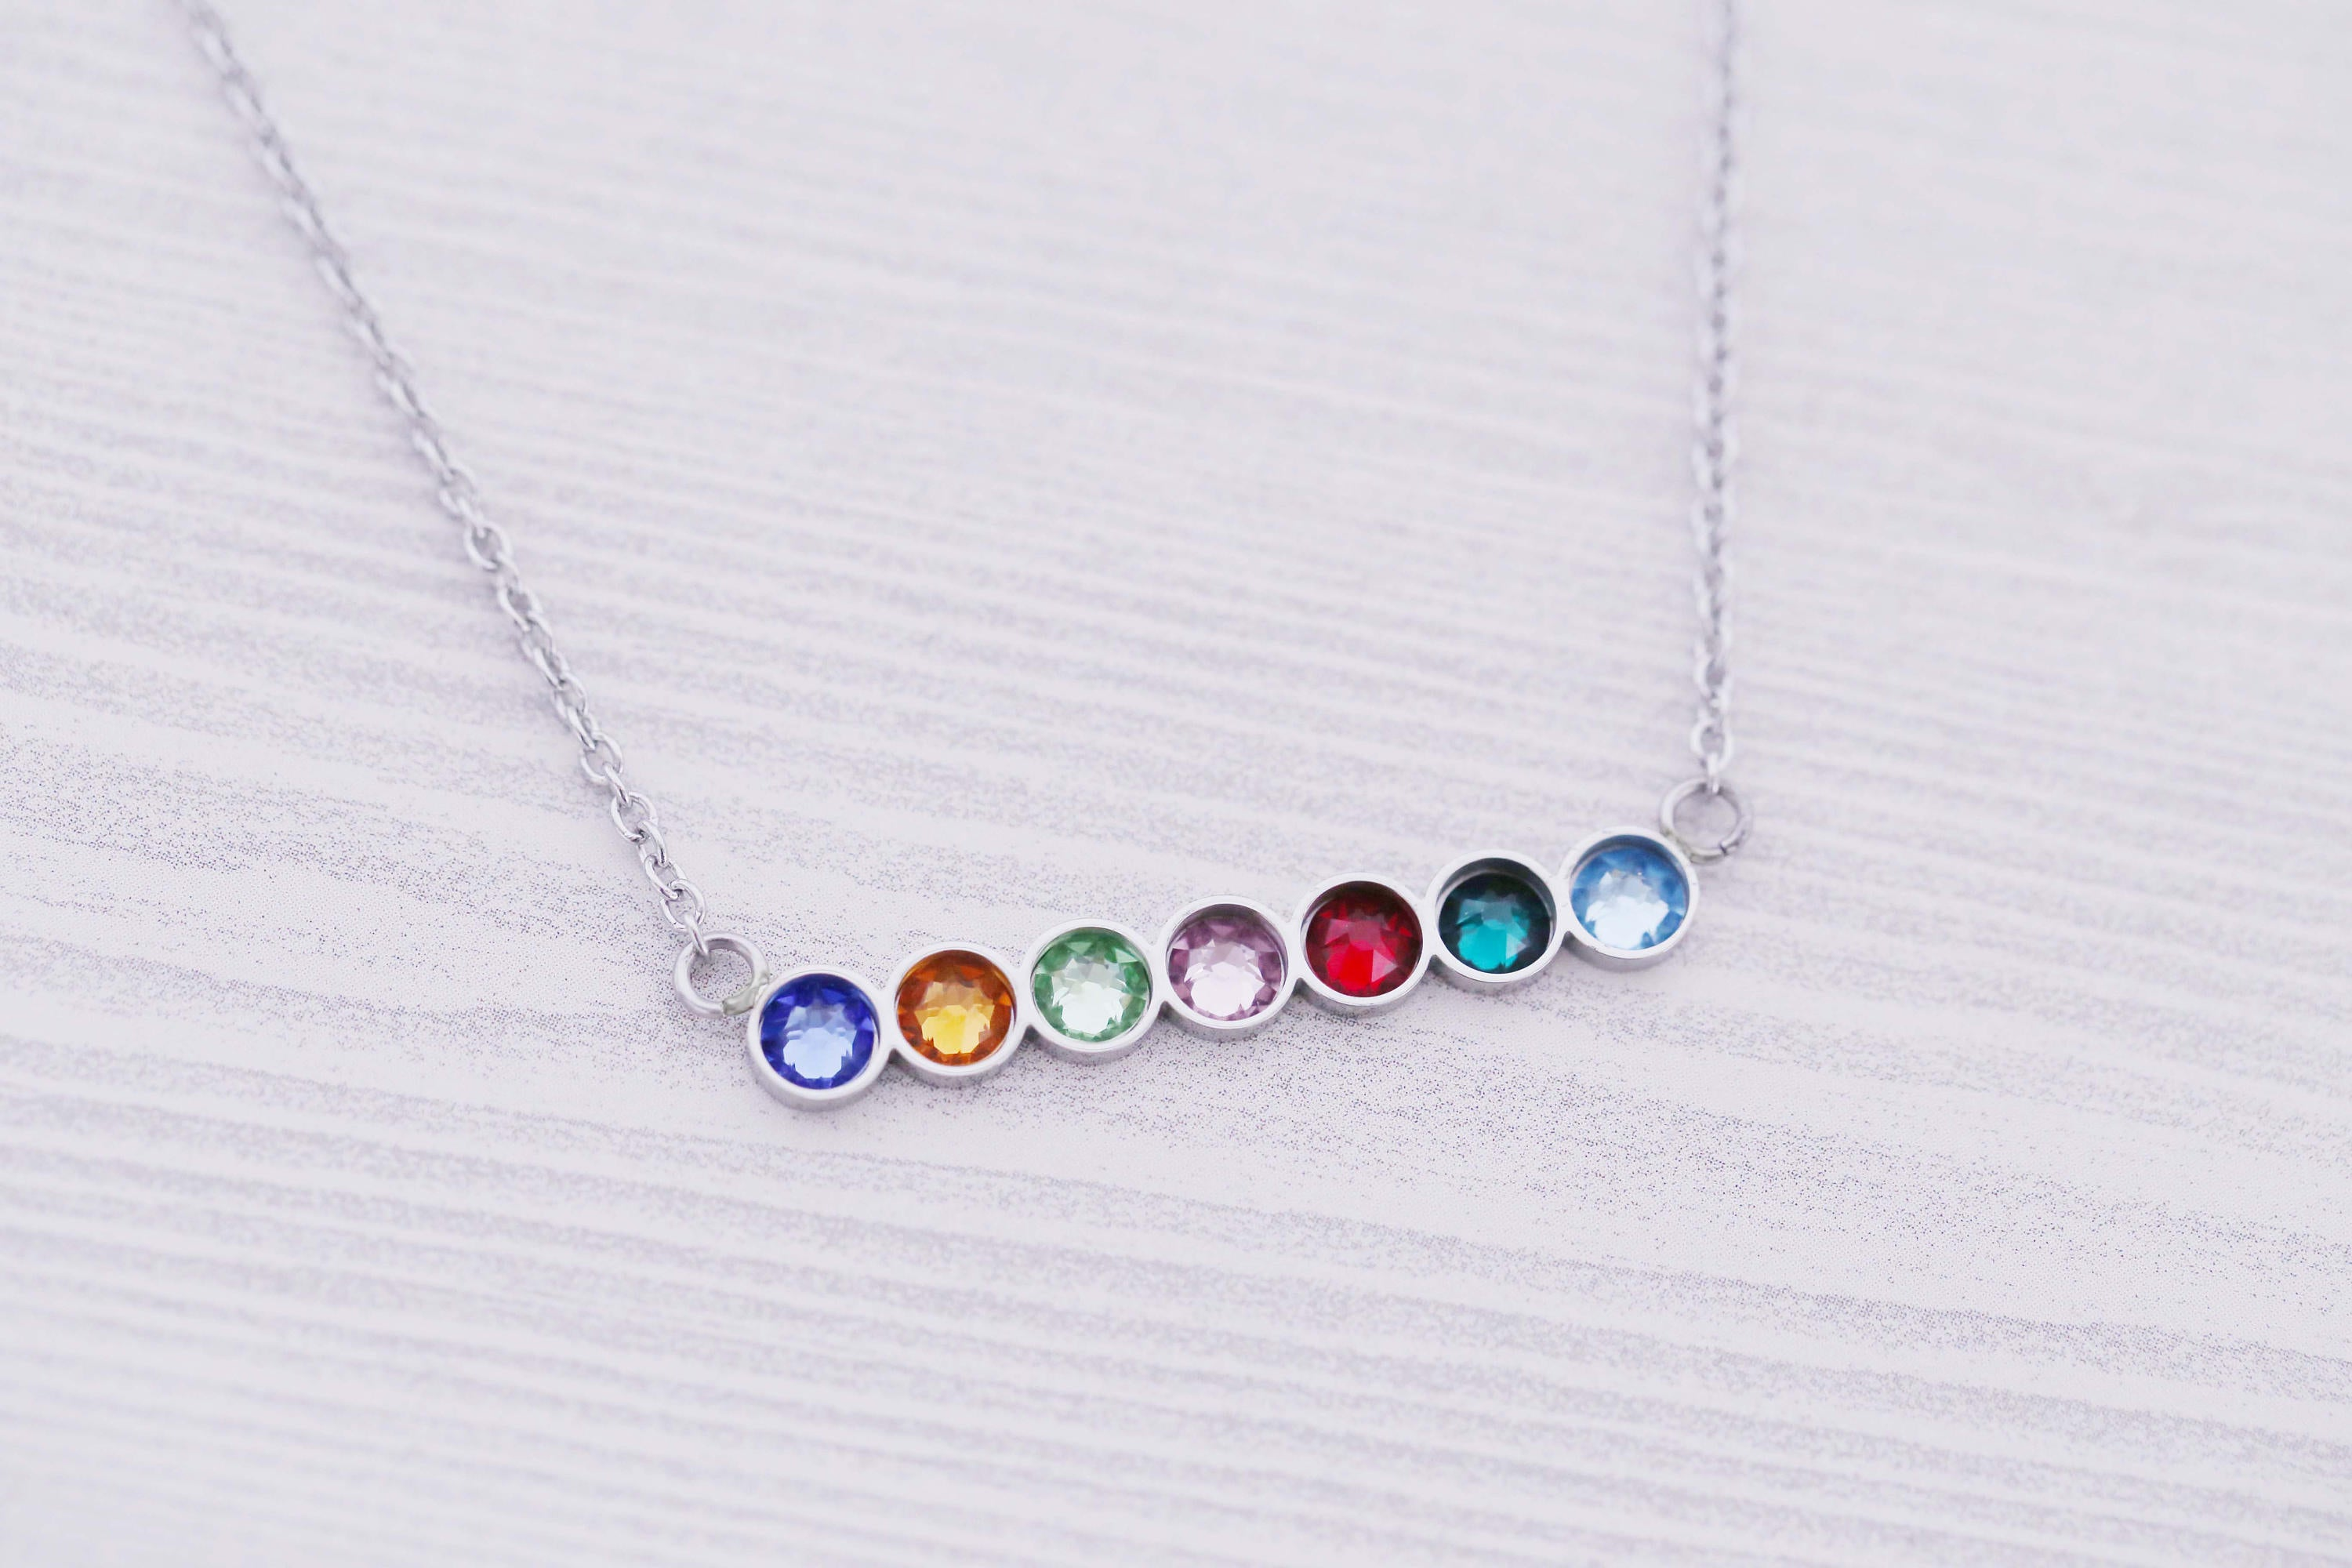 7 Birthstone Bar Necklace - New Mom Gift - New Baby Gift - Kids Name Jewelry - Engraved Jewelry - Bar Pendant - Bar Necklace